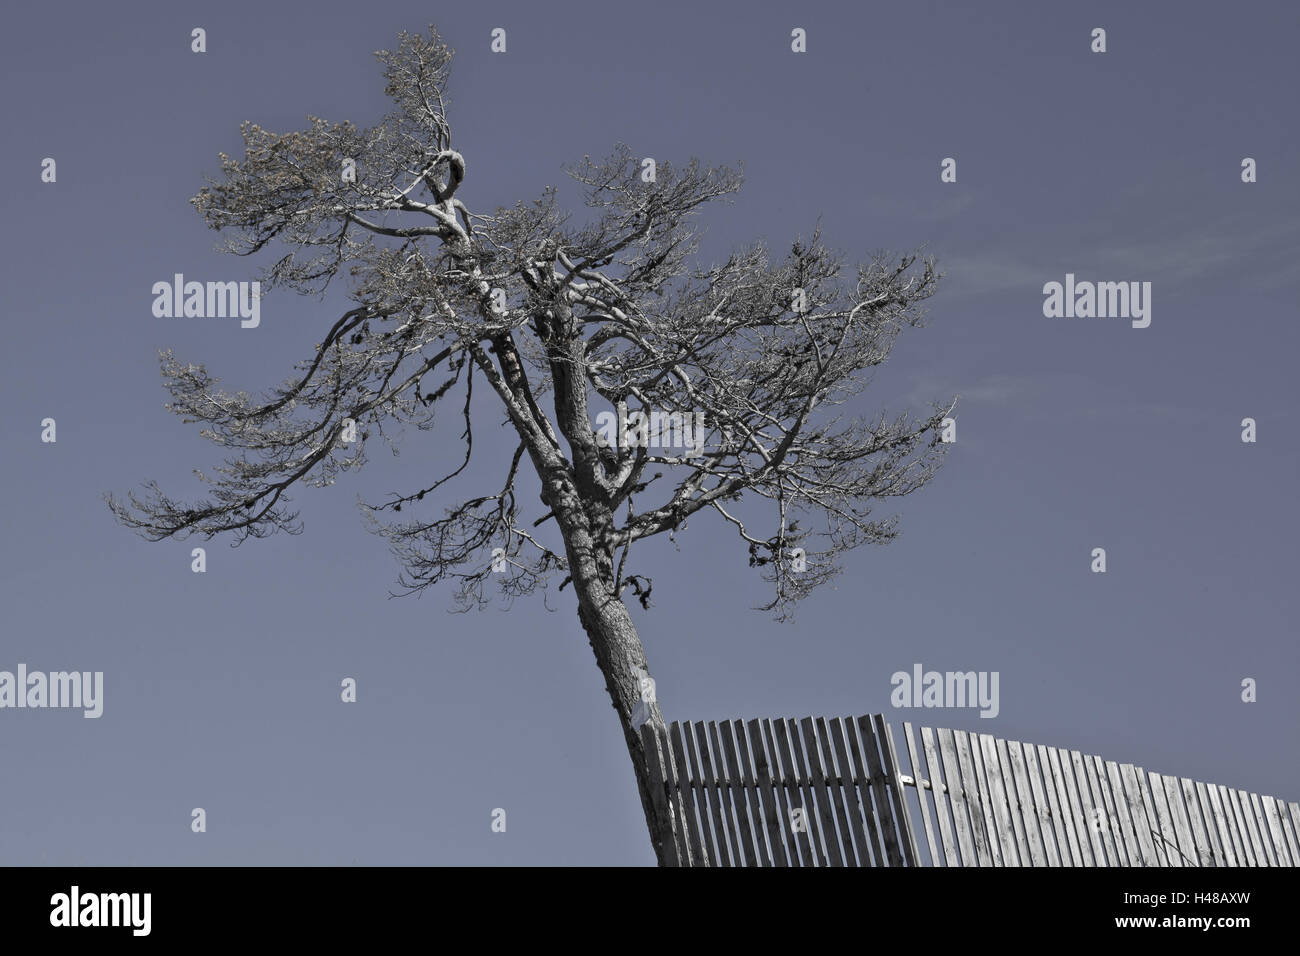 crooked tree beside paling, - Stock Image